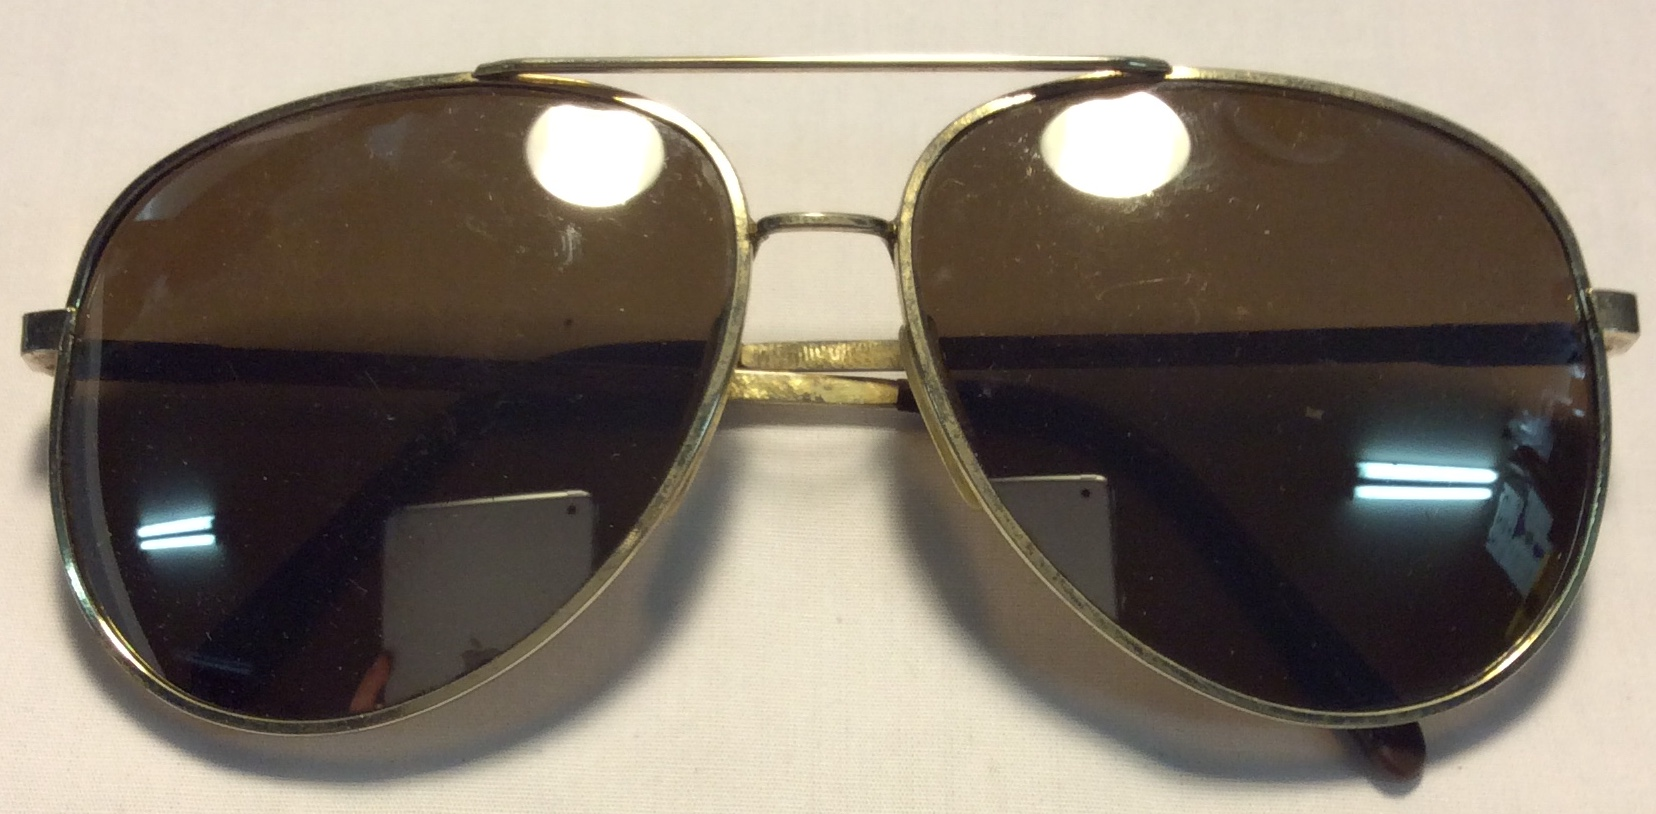 Tropic-Cal Gold metal frames